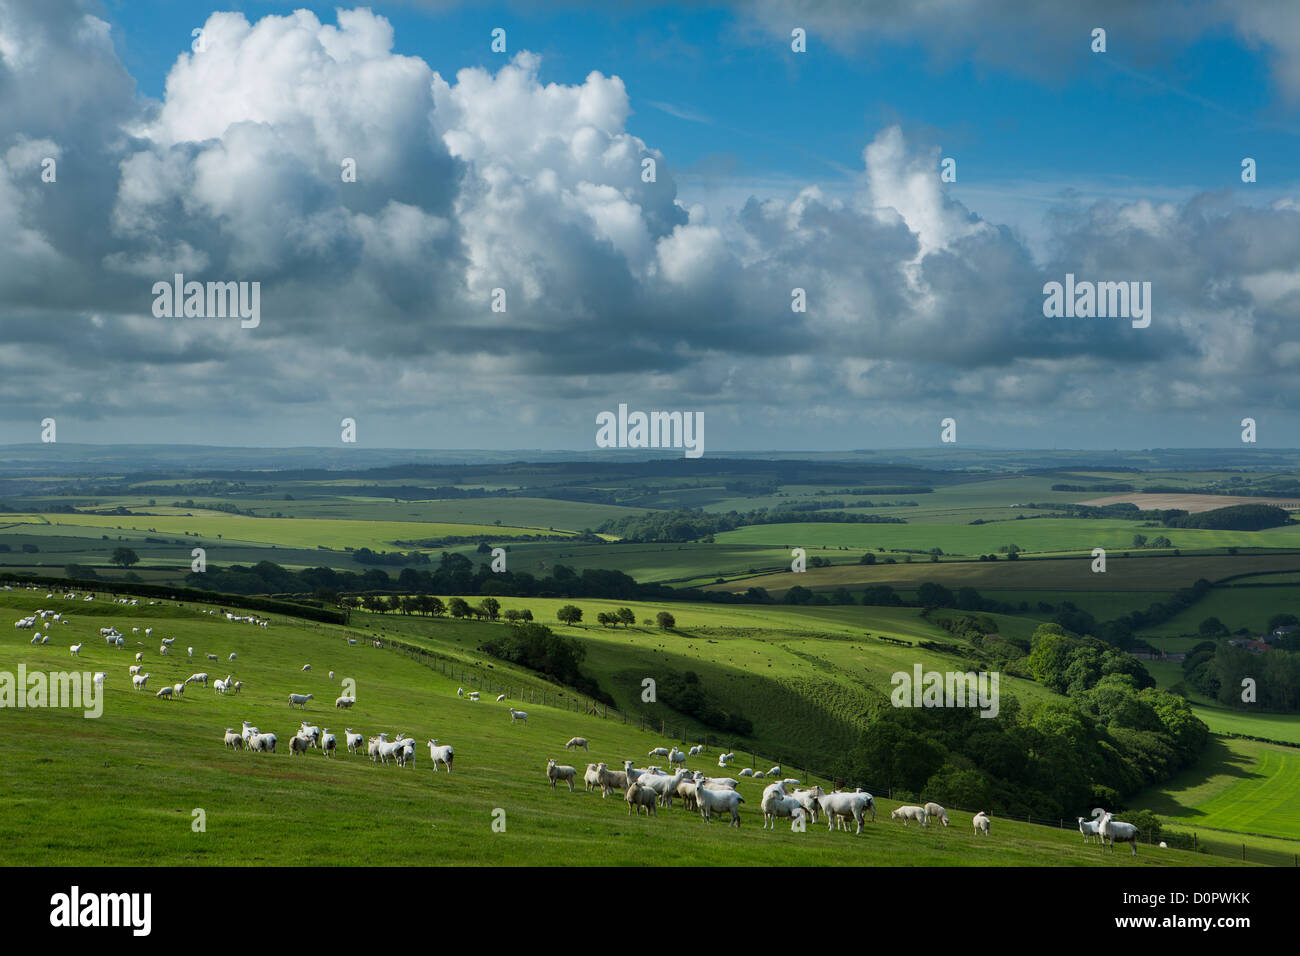 sheep in a field near the Dorset Gap, Dorset, England, UK - Stock Image